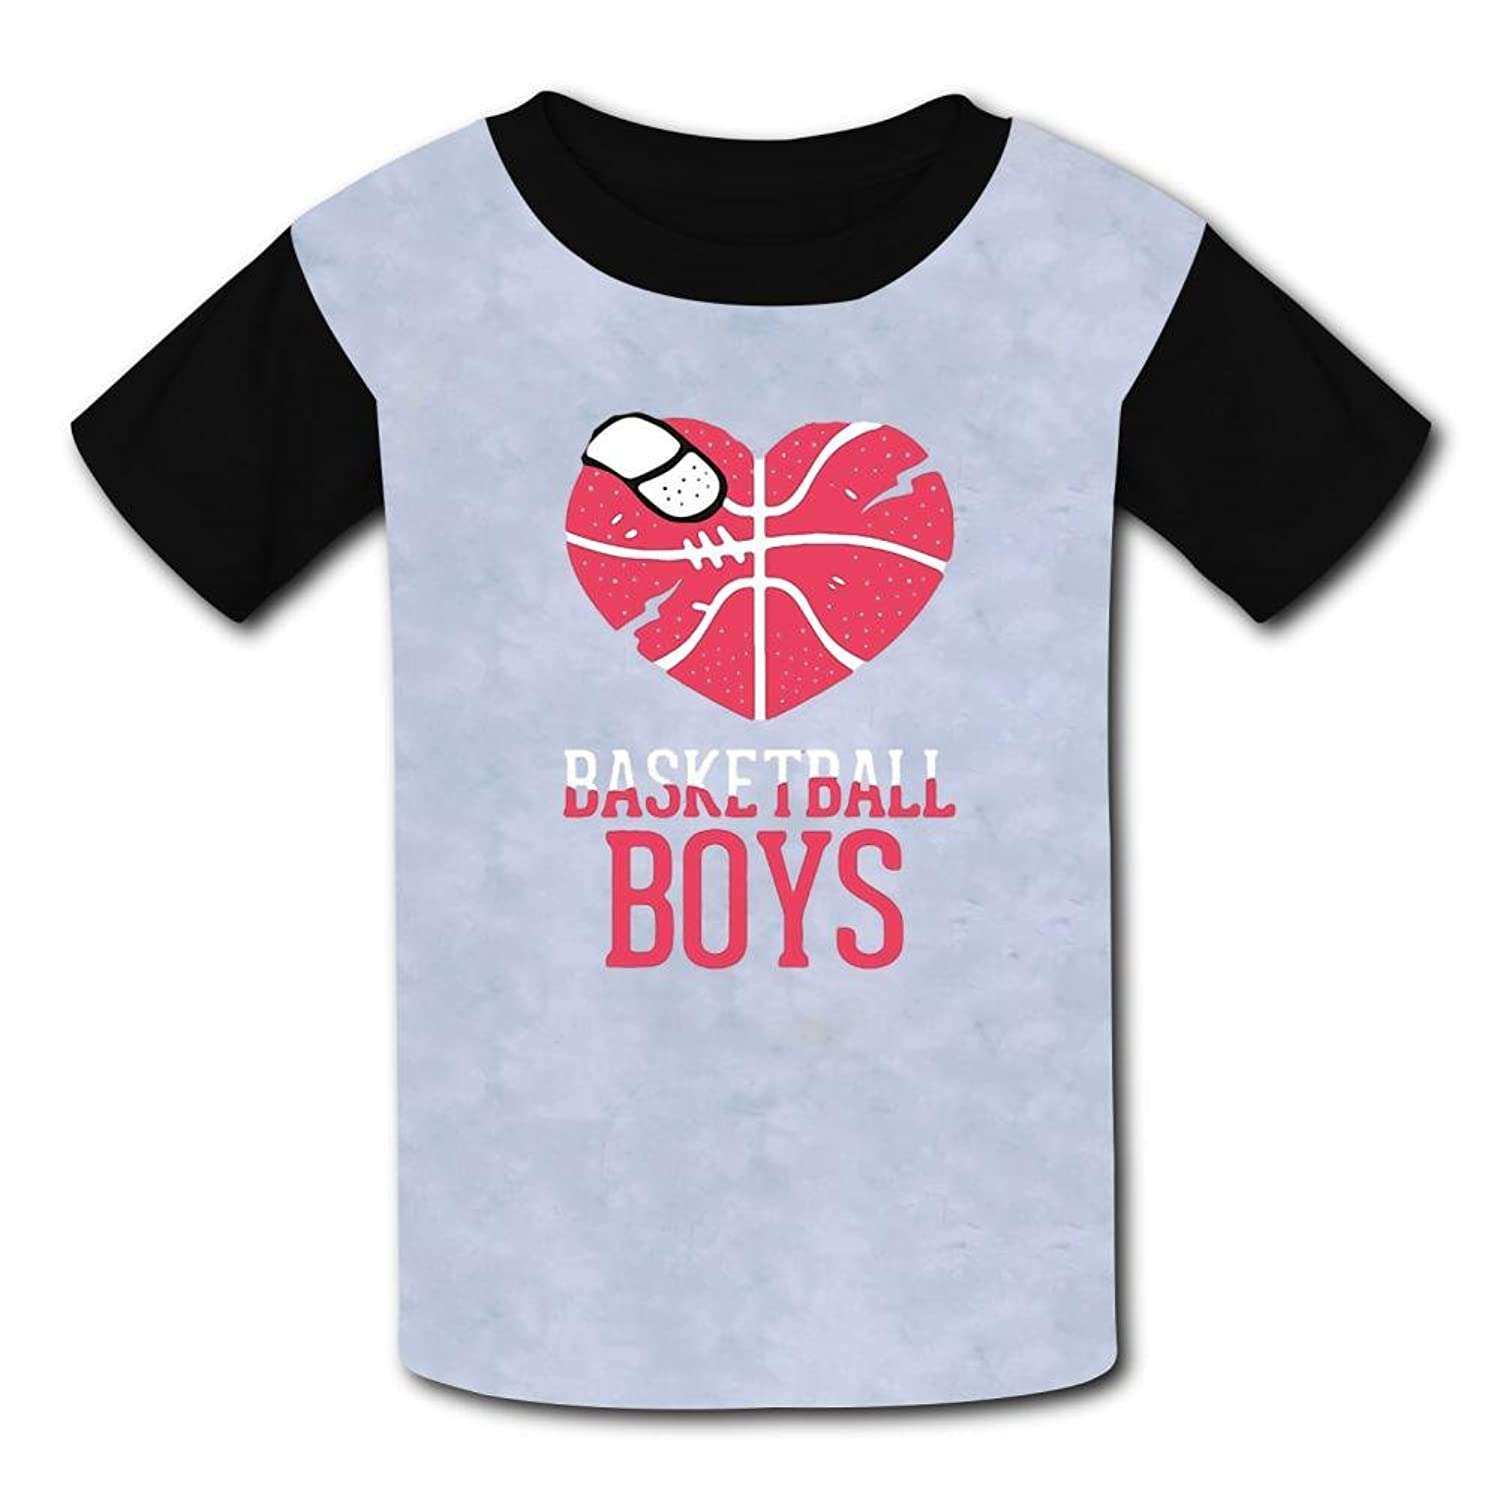 Top Basketball Boys Light Weight T-Shirt 2017 The Latest Version for Kidsfree Postage for cheap